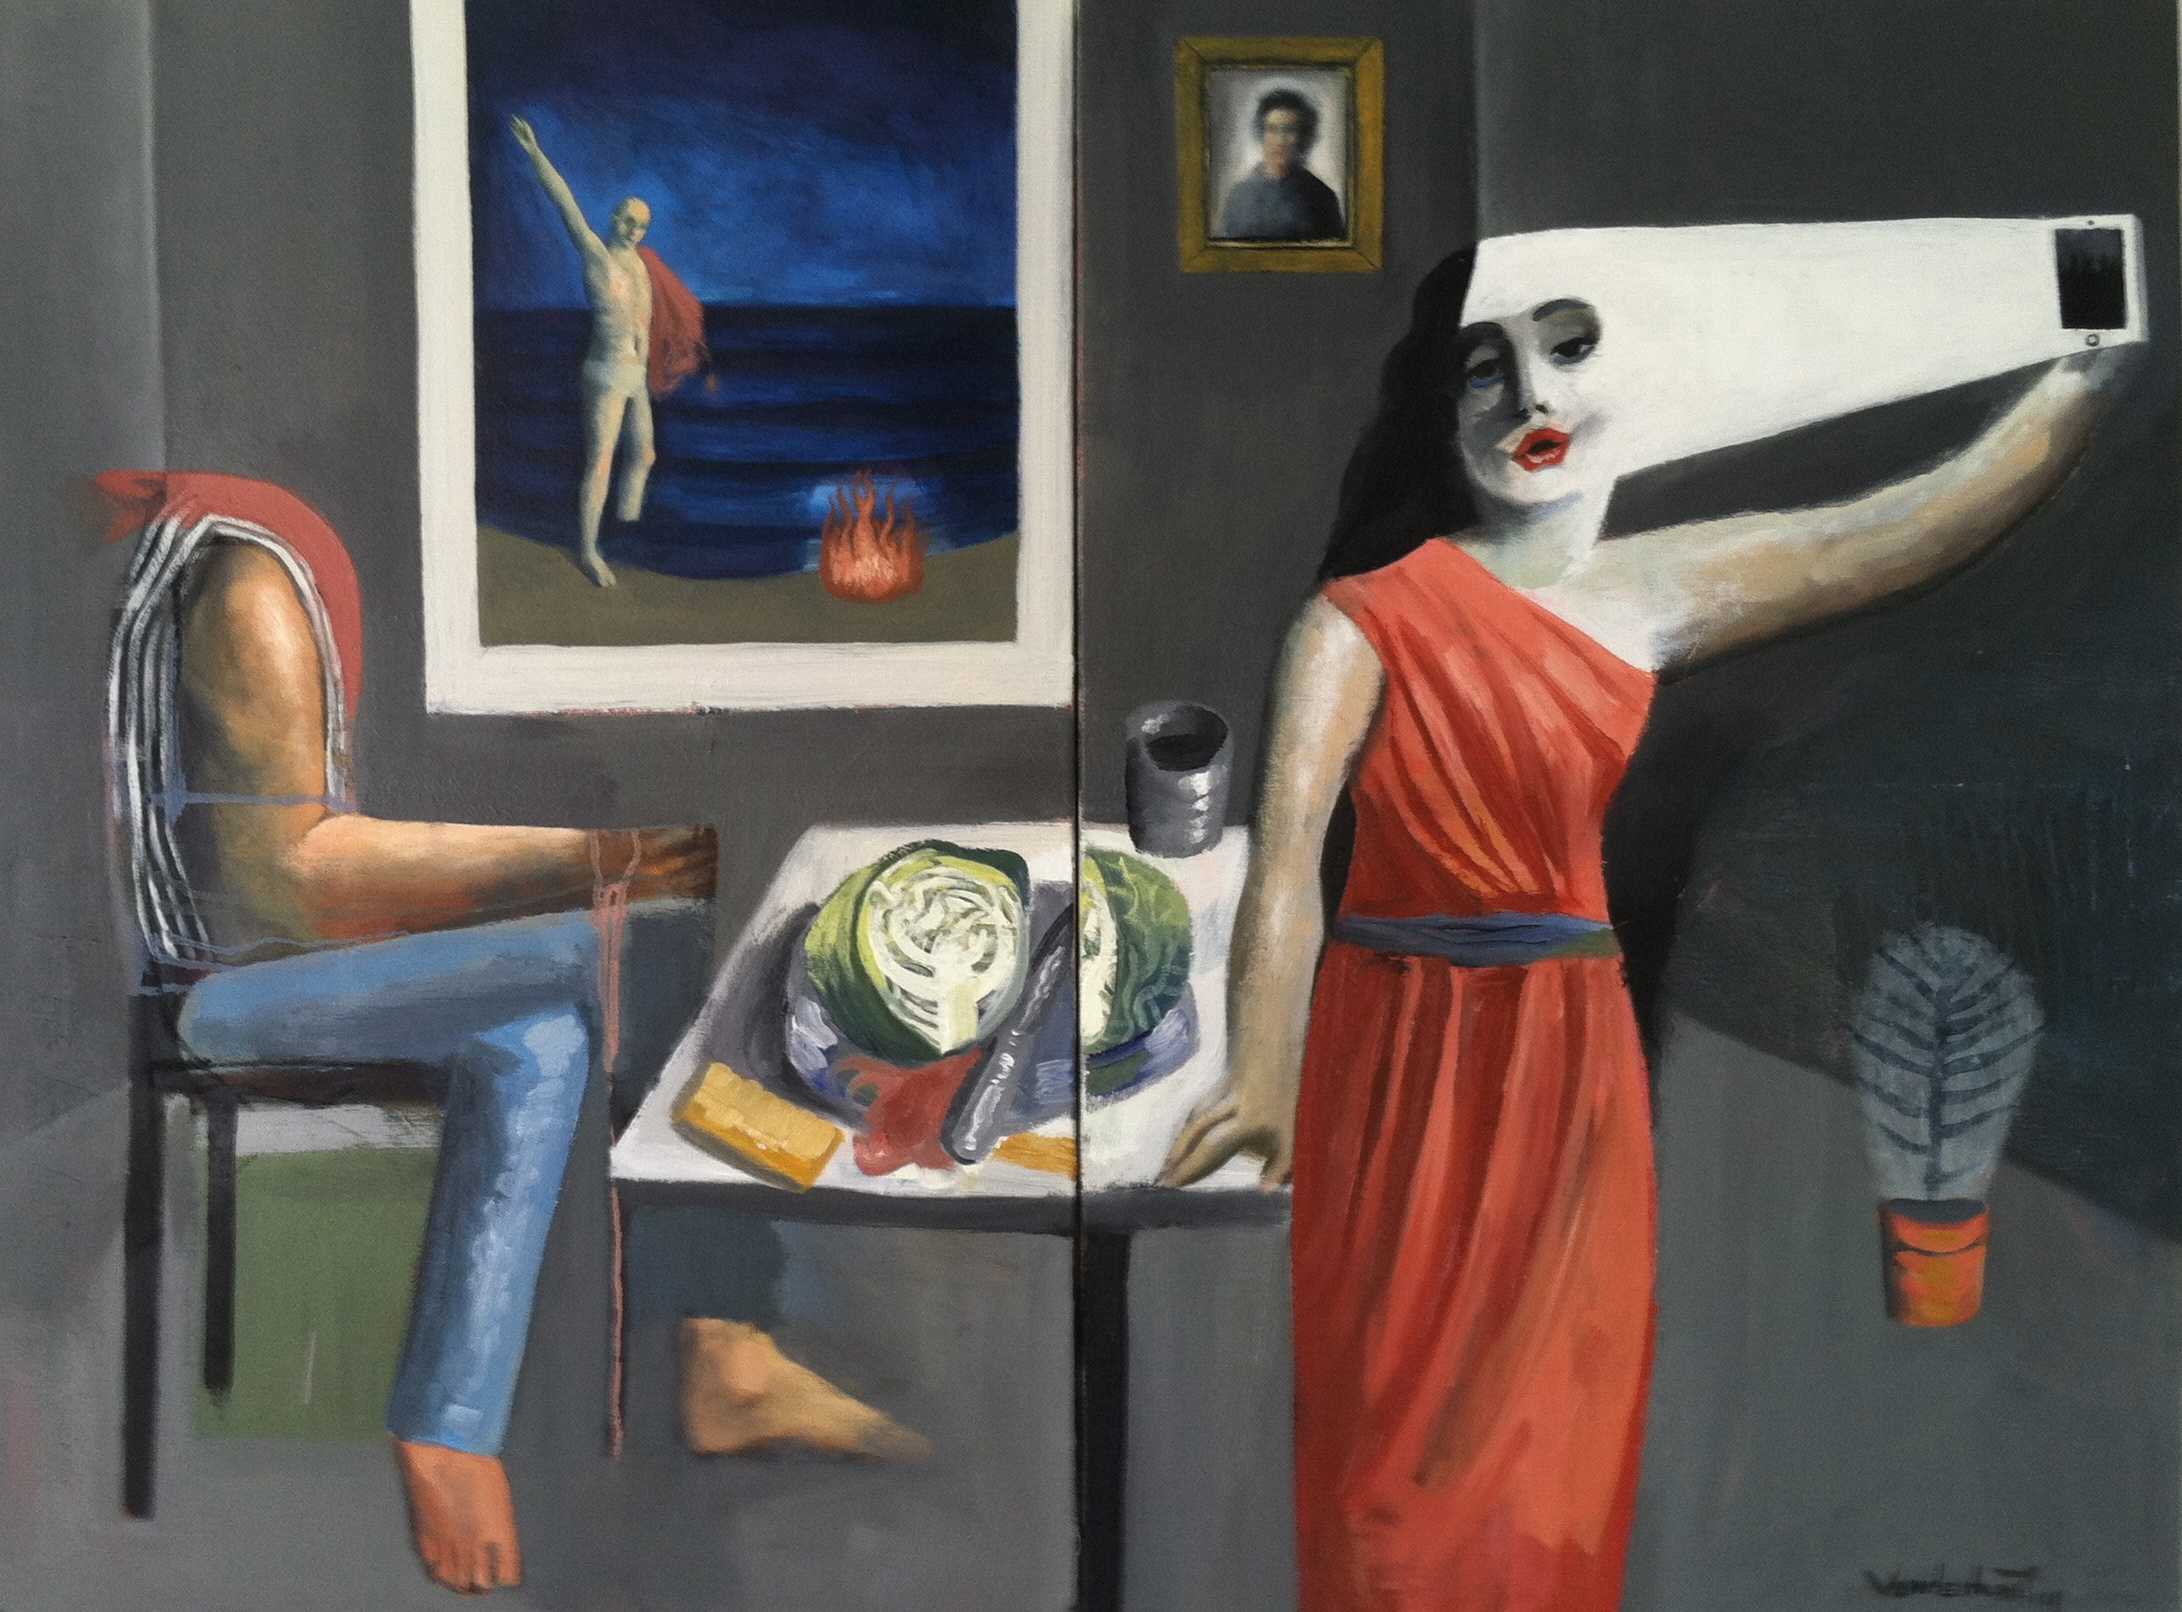 The vanity of time, oil on canvas, two canvases, 24x36 inches each, 2014